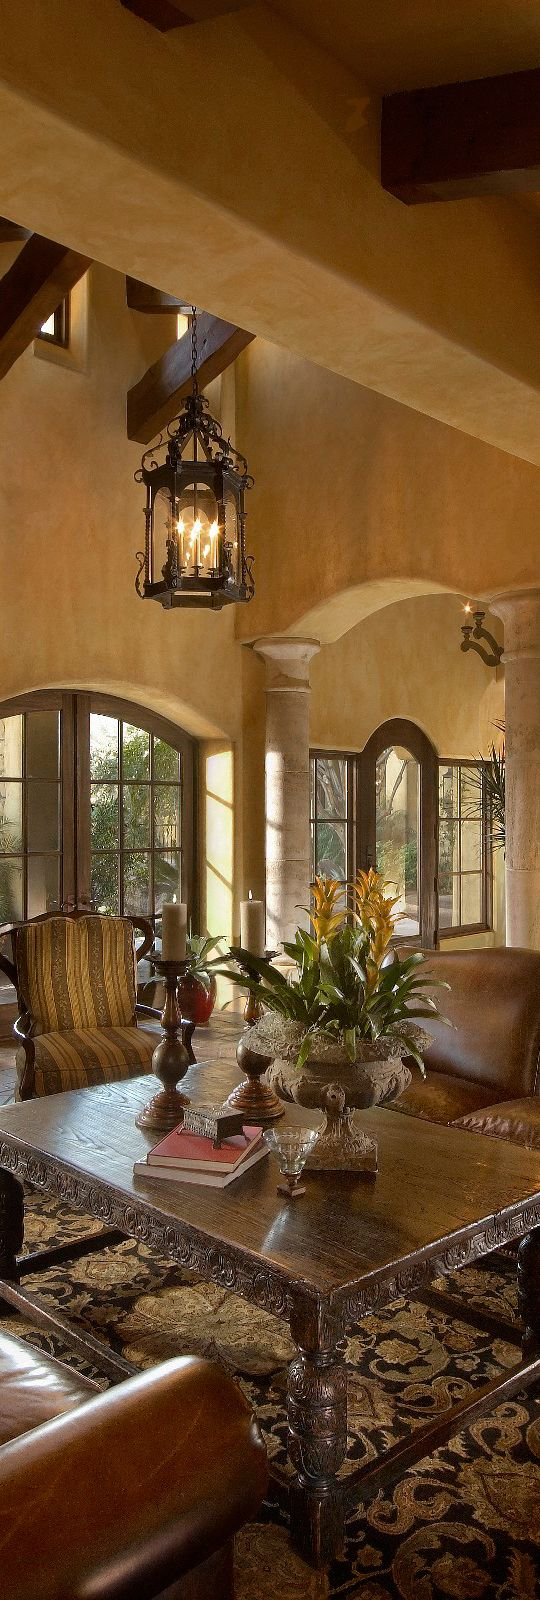 Cozy sitting area. Love all the arched windows. Mediterranean ...